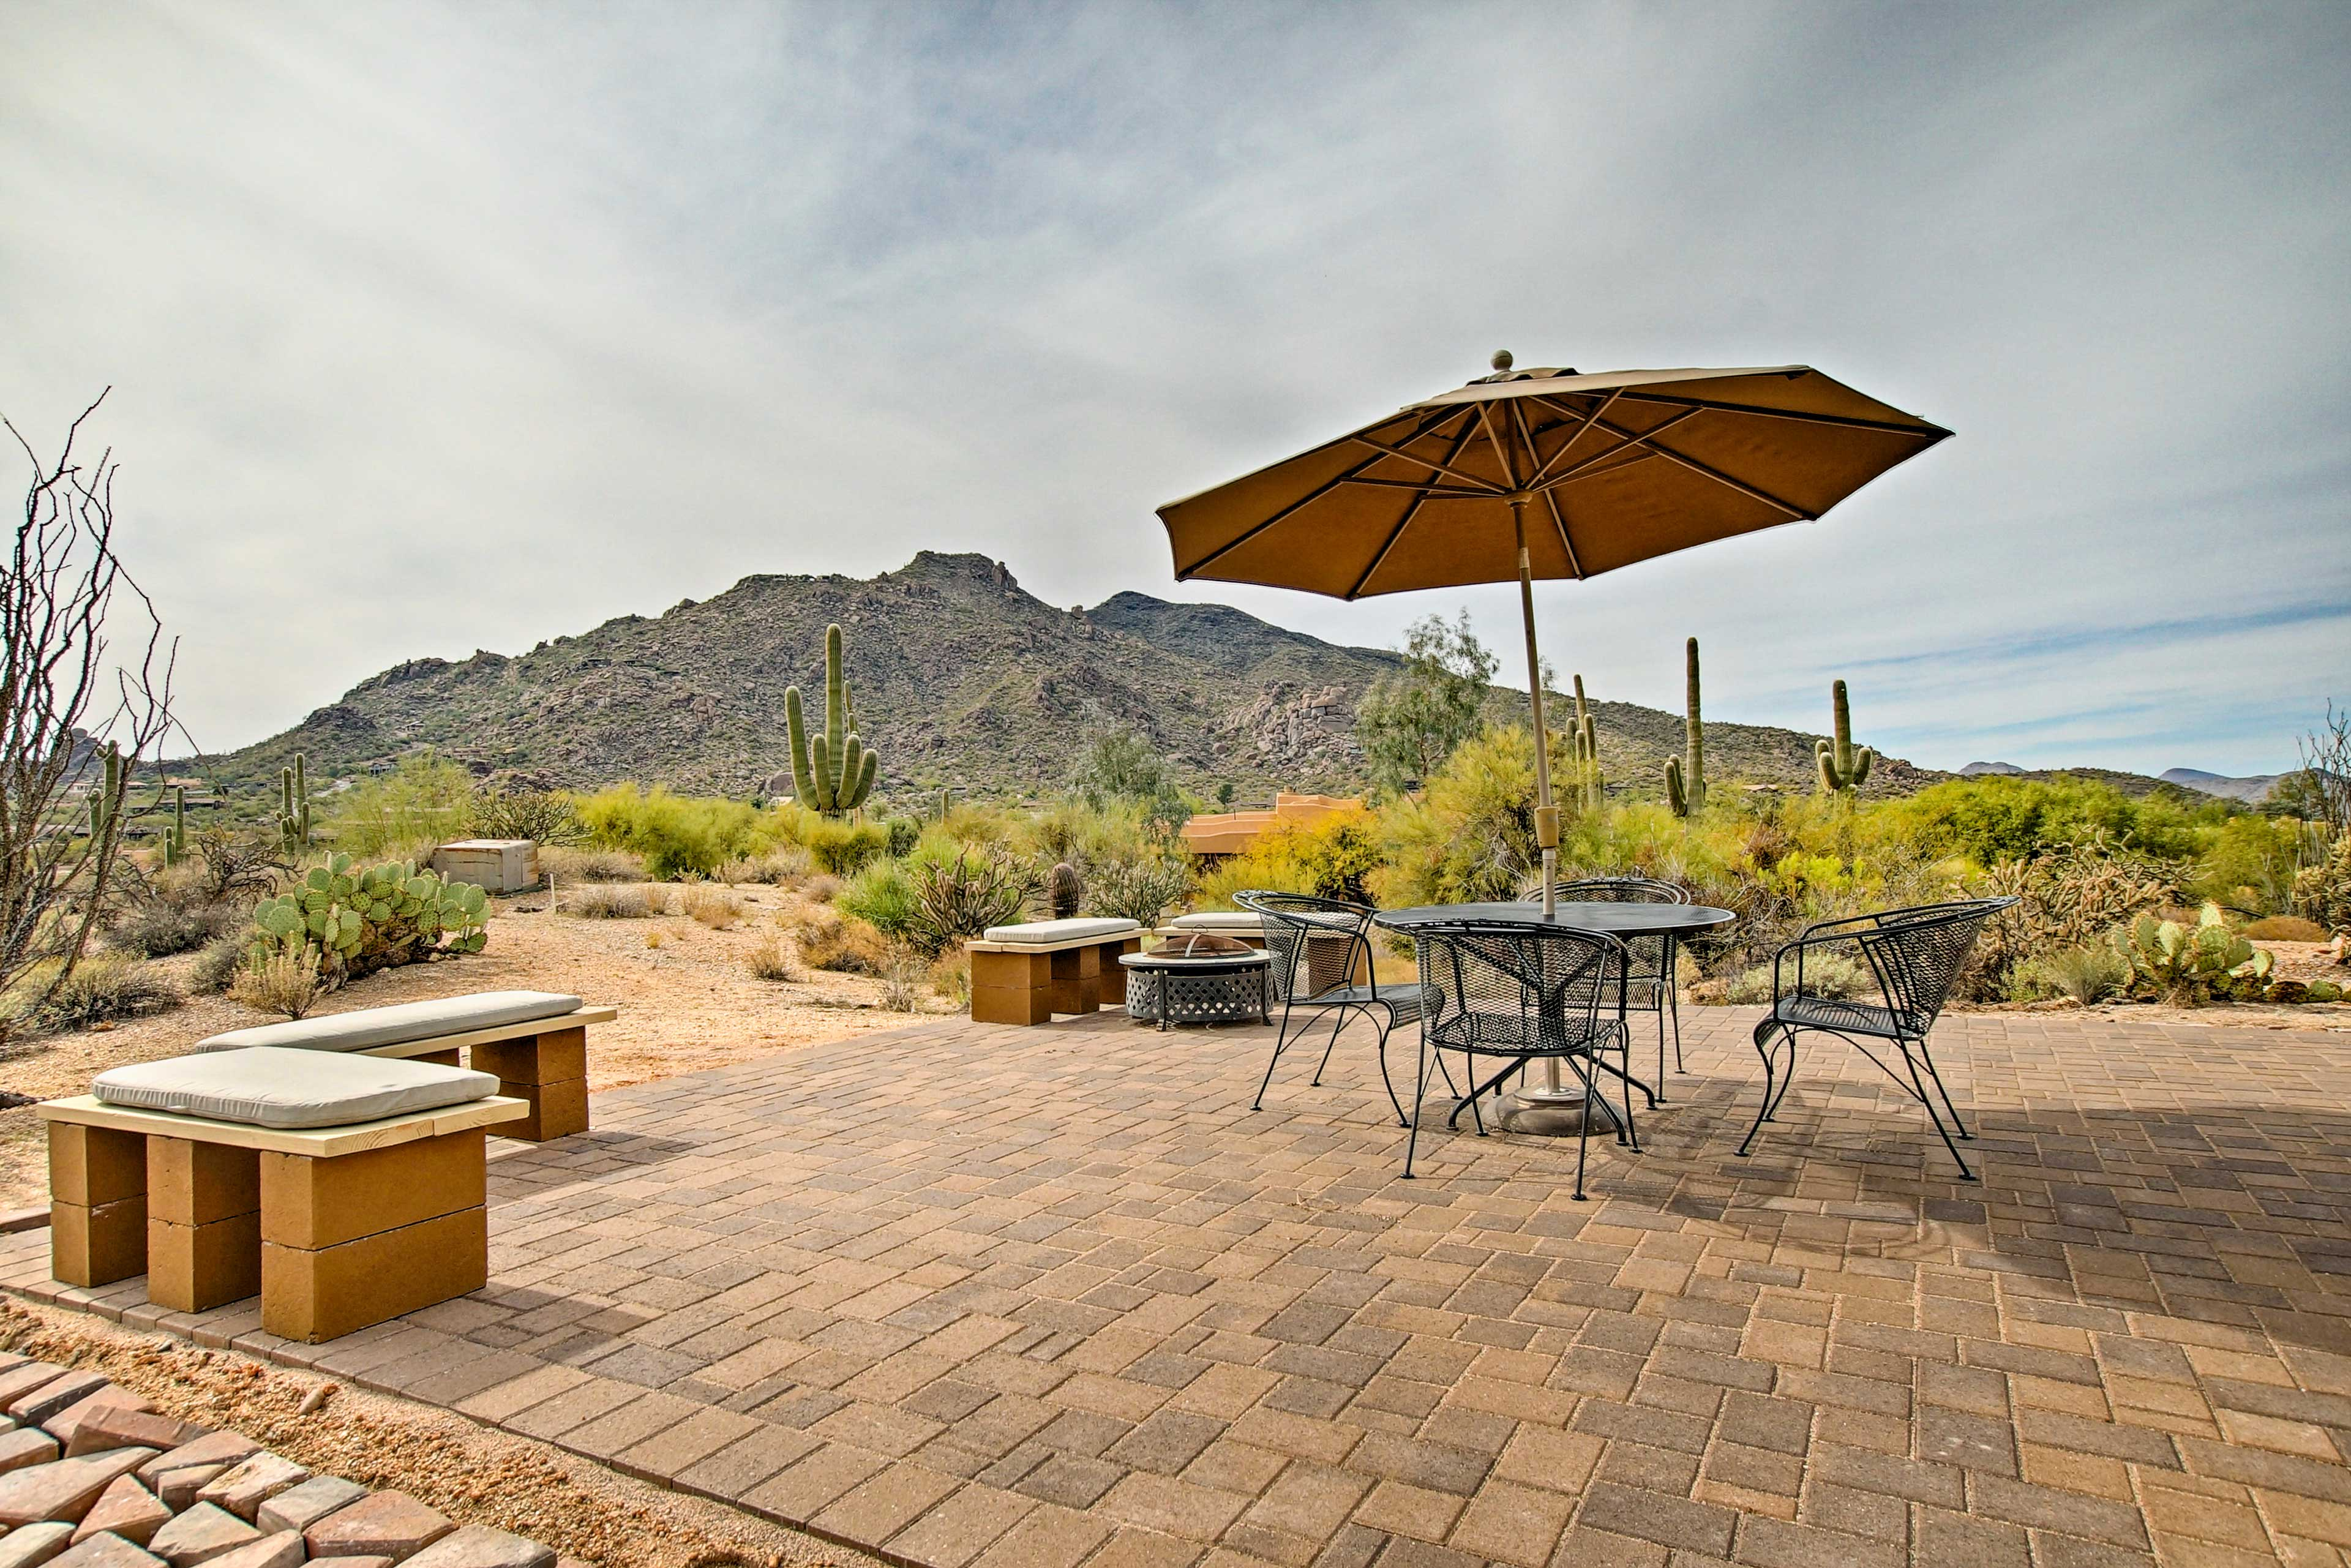 Enjoy a meal on the furnished patio.